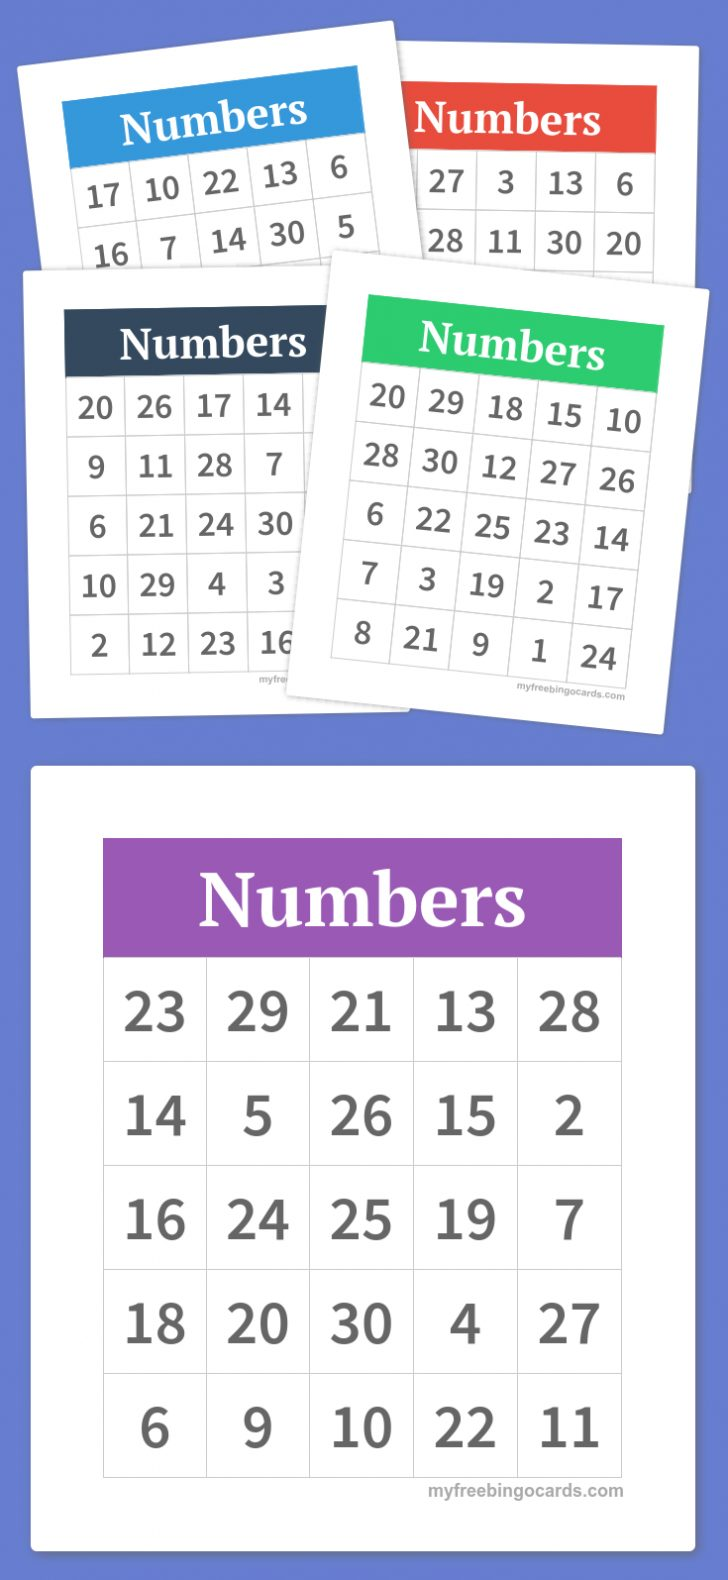 Free Printable Bingo Cards With Numbers 1 20